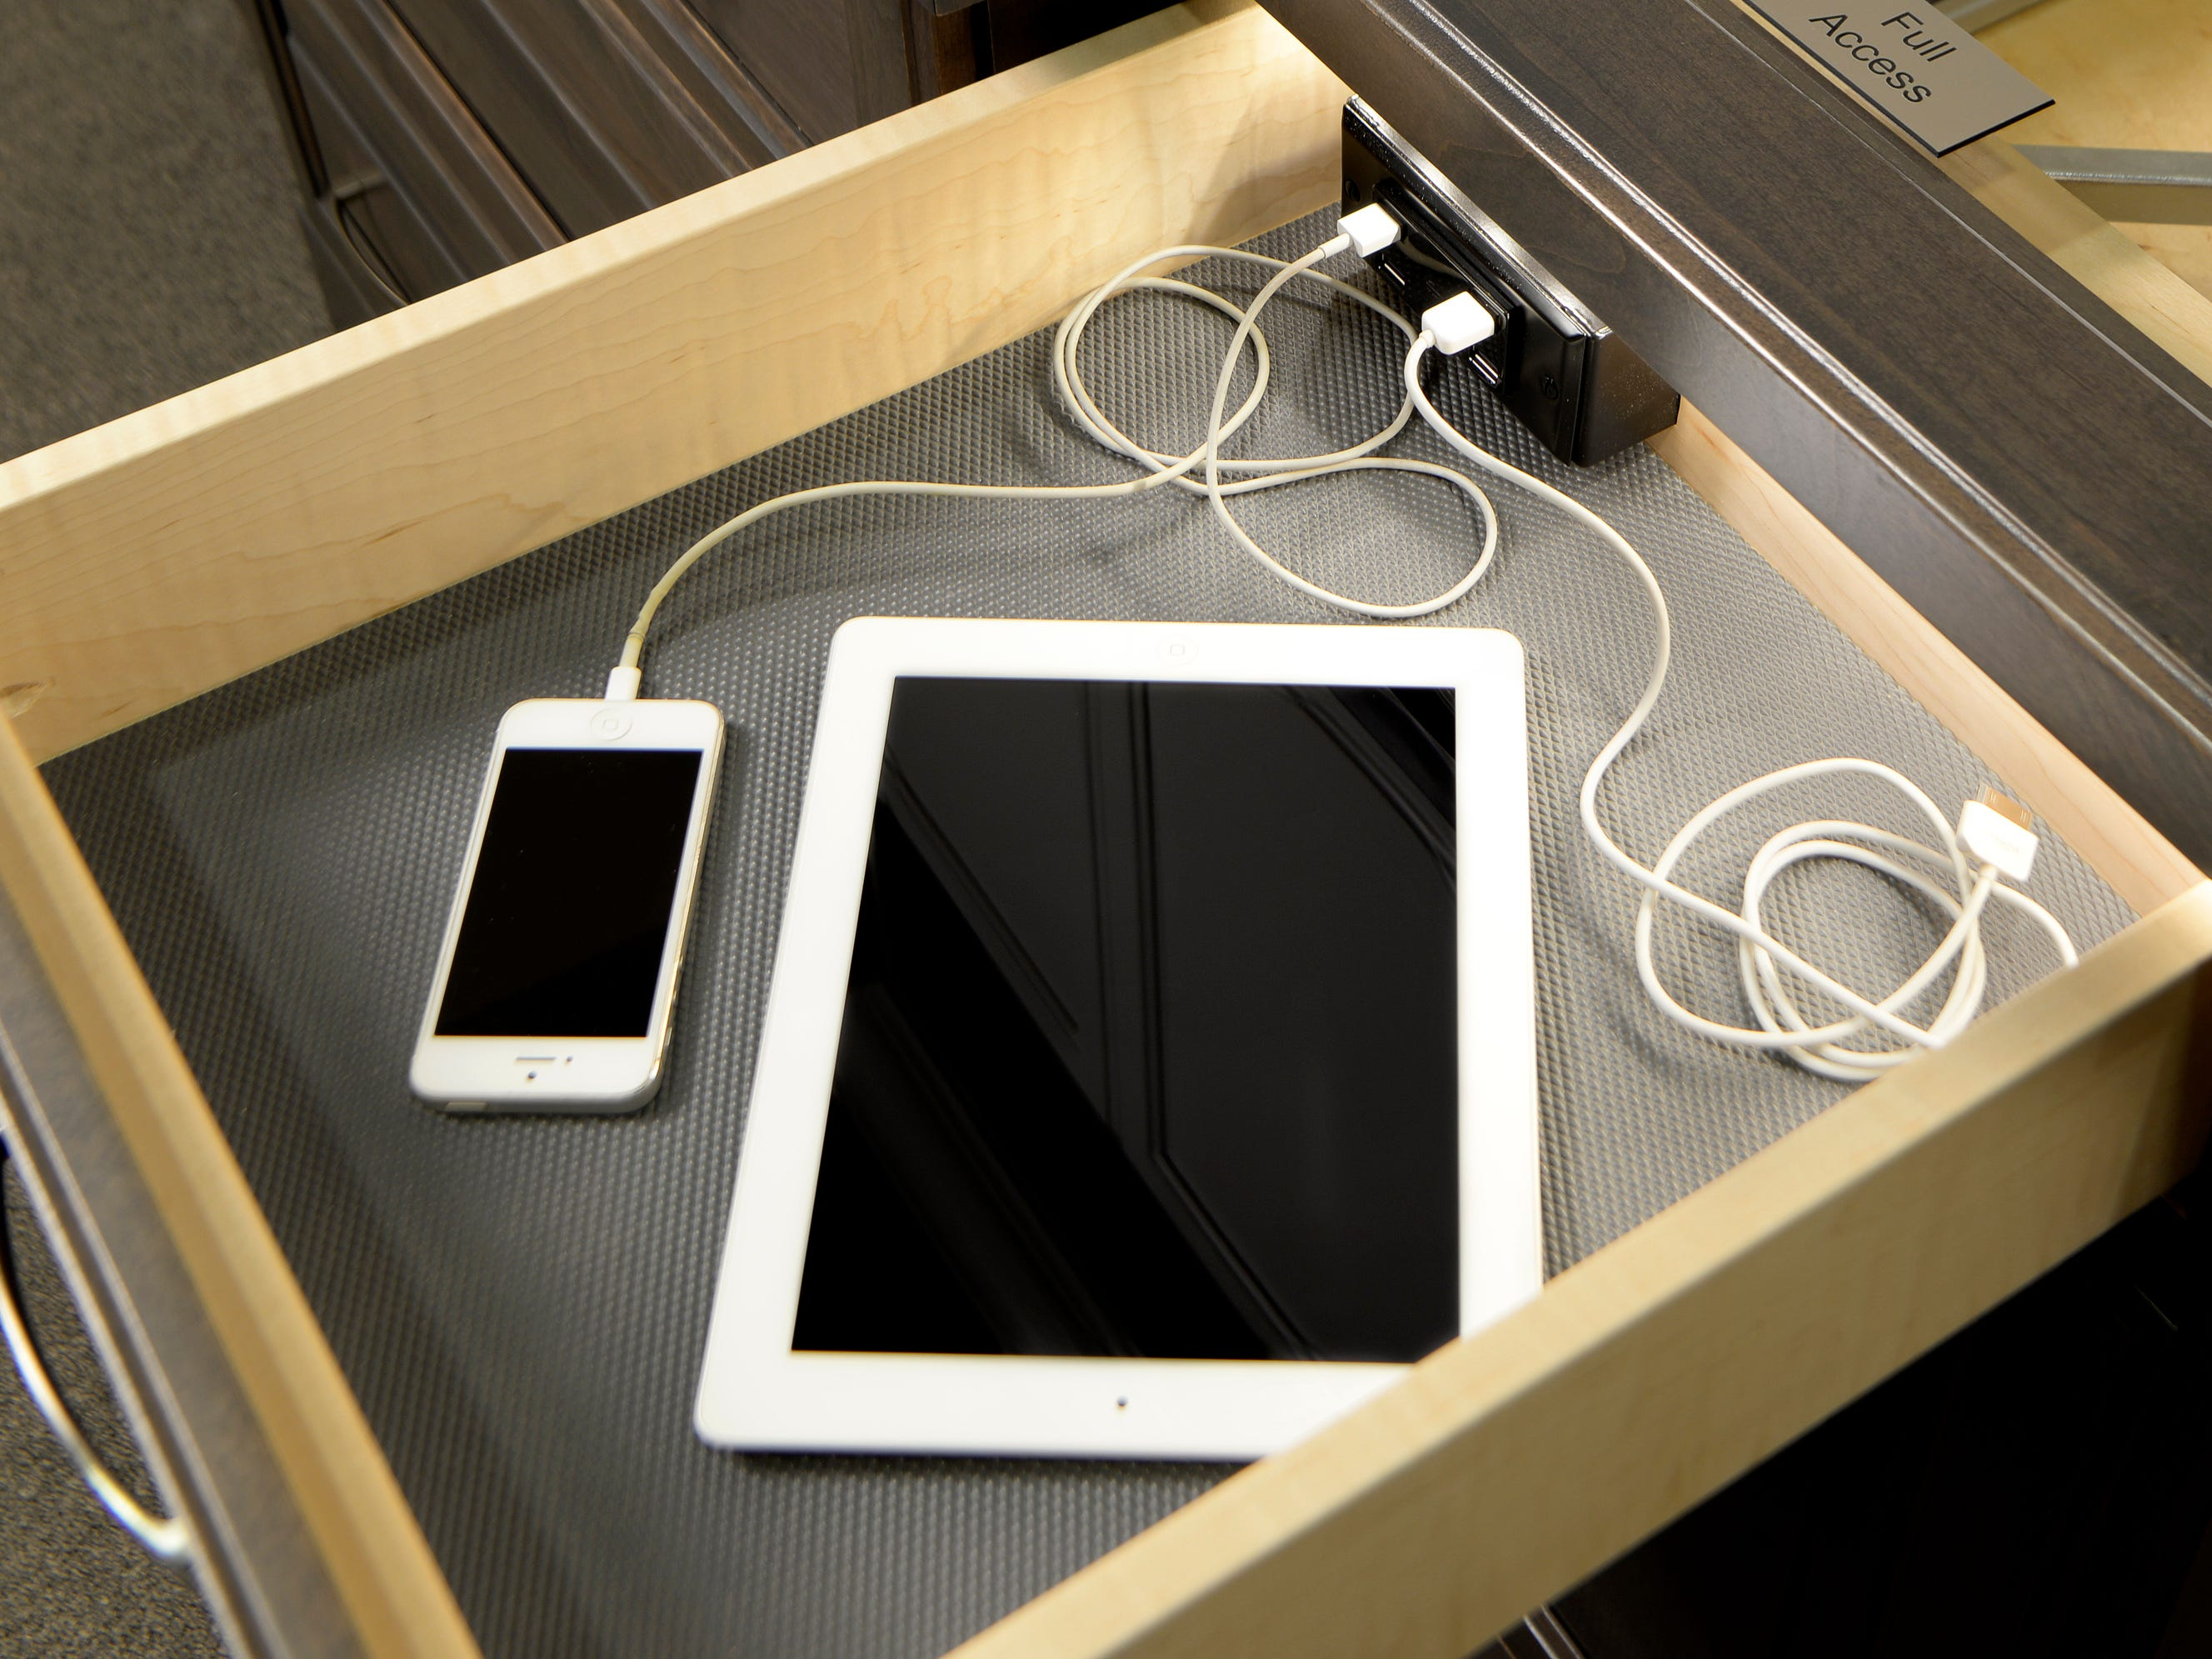 A pull-out drawer permits hidden charging of phones and tablets.